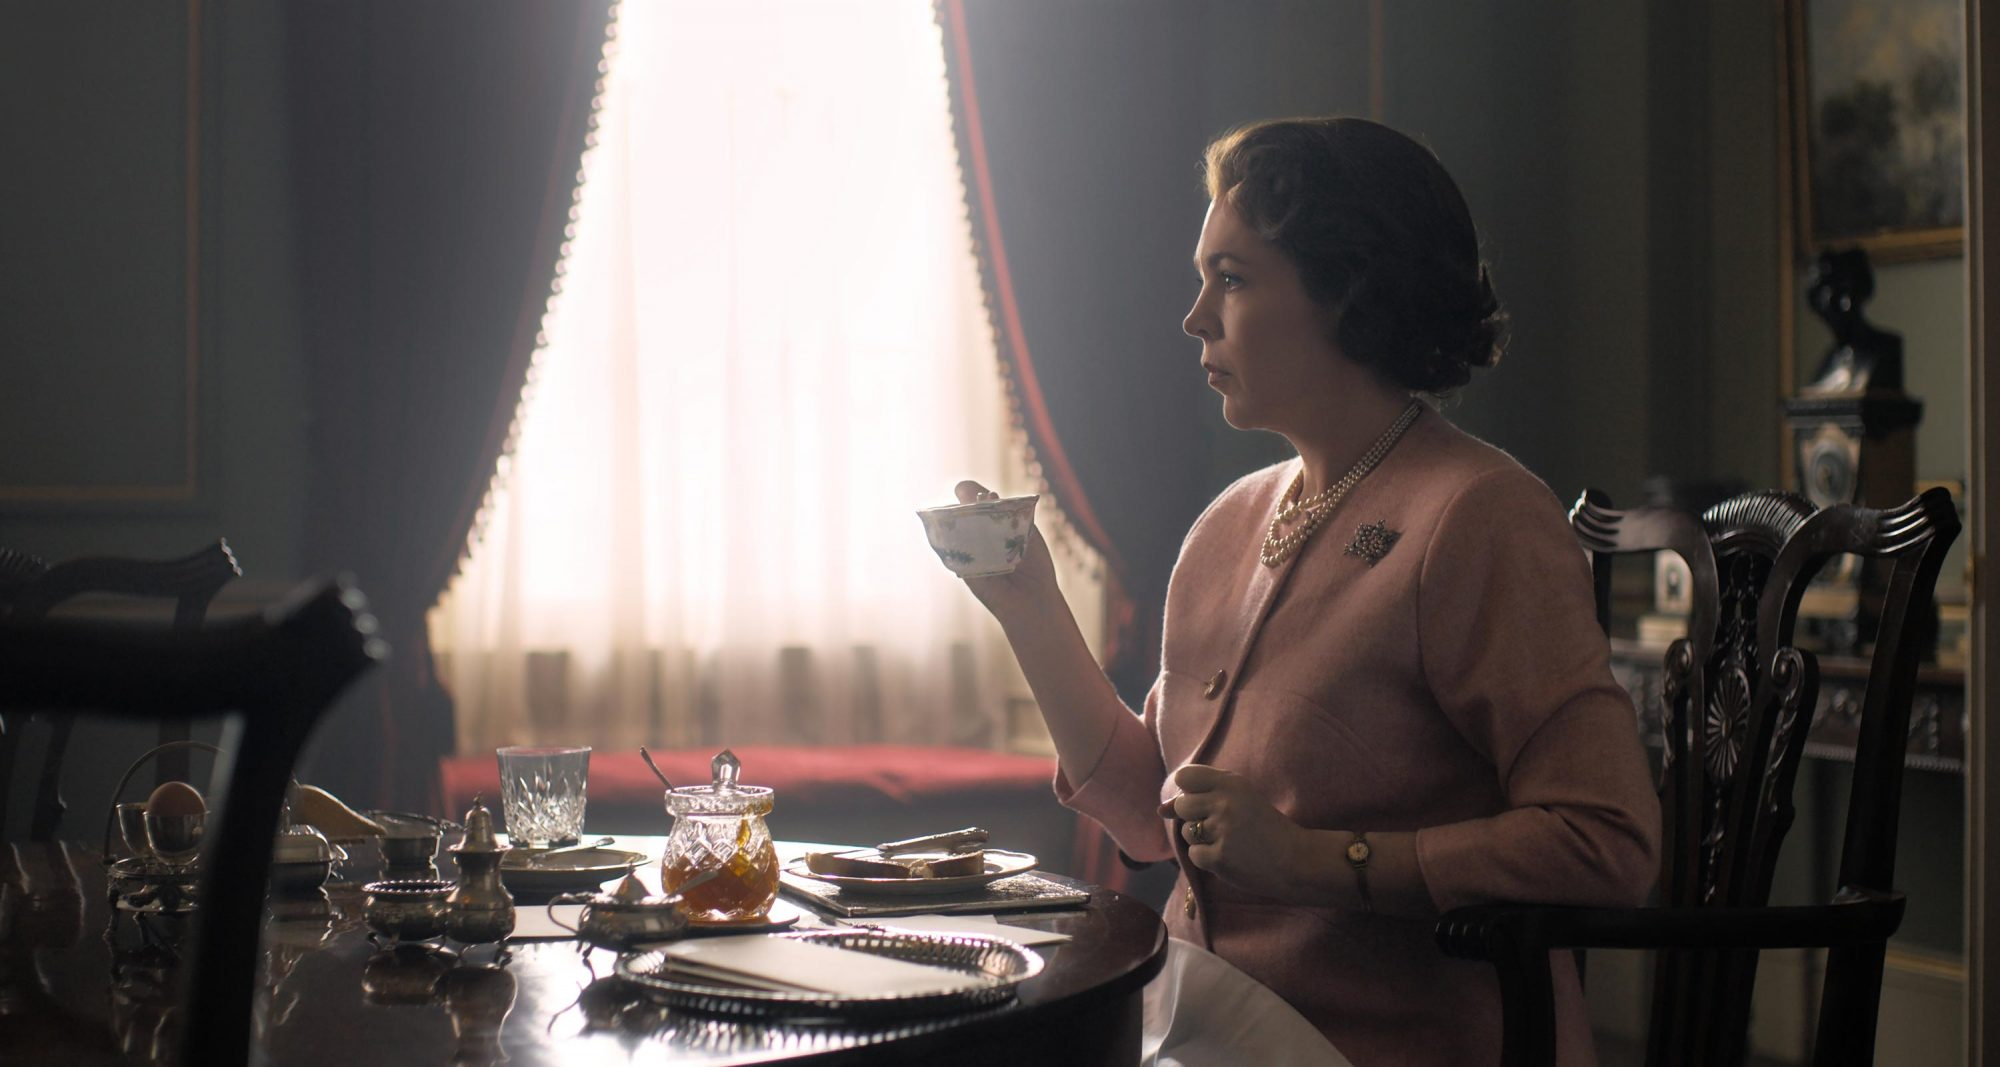 Olivia Colman as Queen Elizabeth II (season 3)